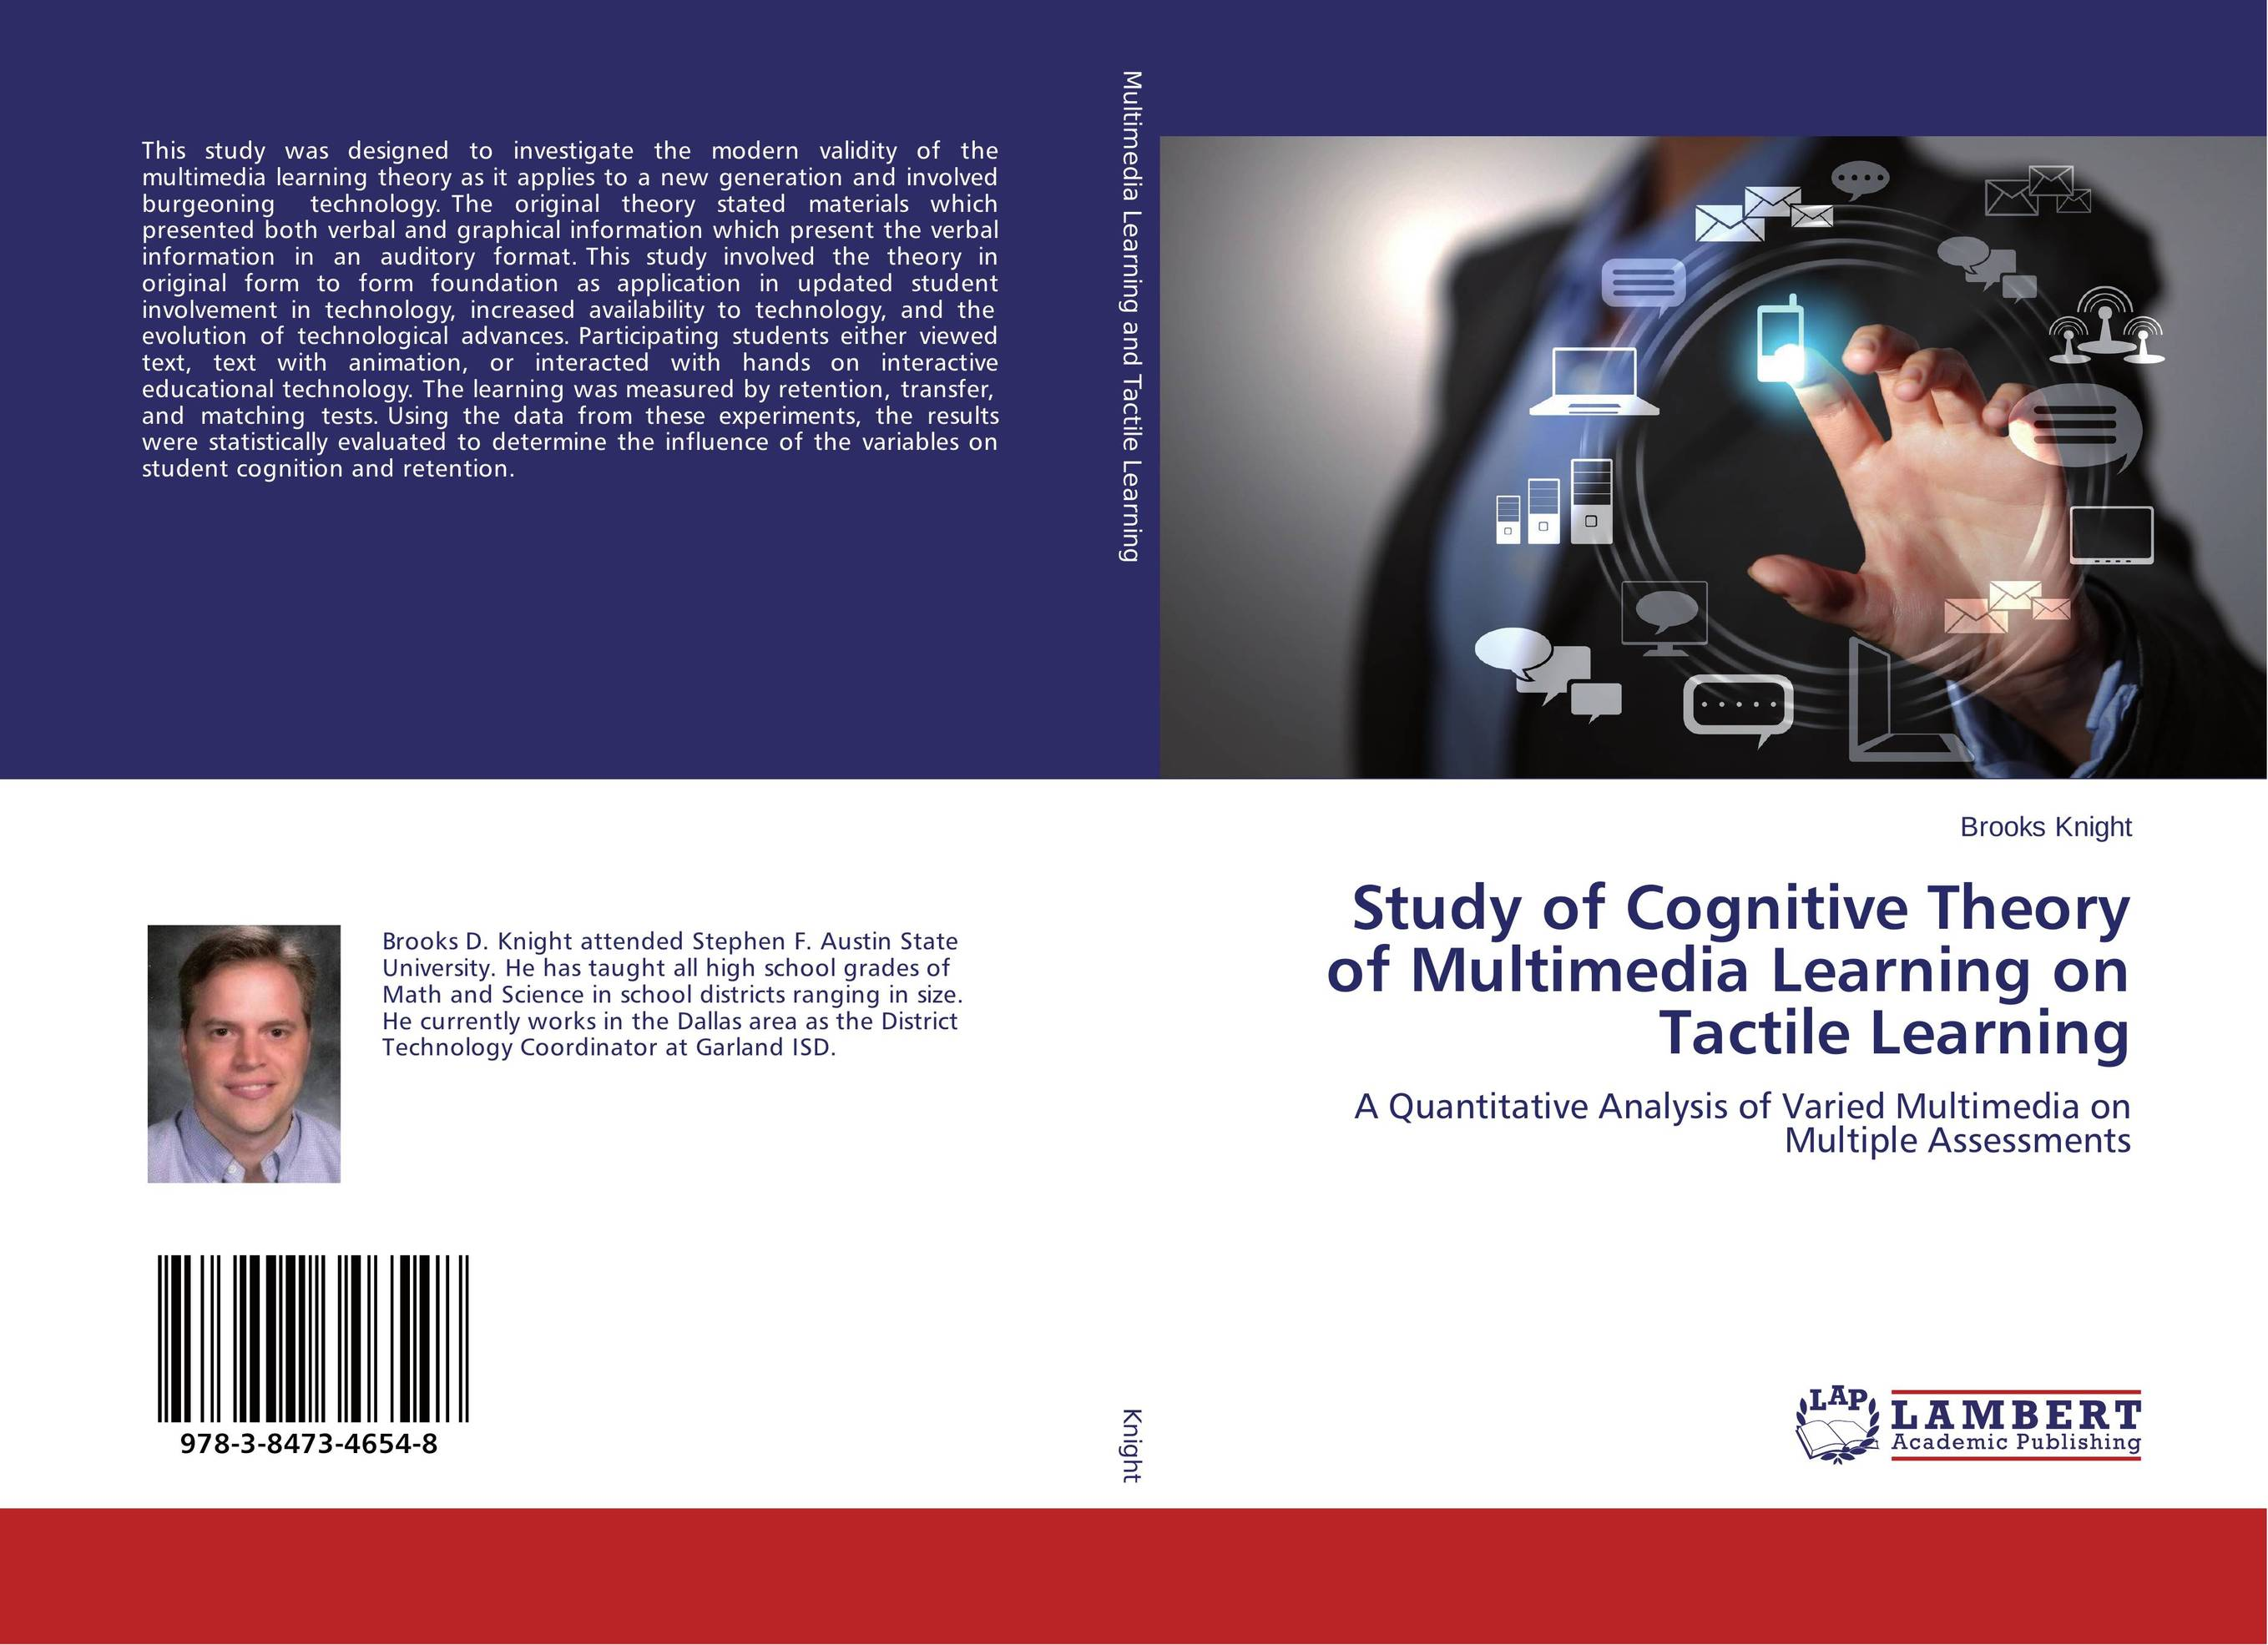 Study of Cognitive Theory of Multimedia Learning on Tactile Learning